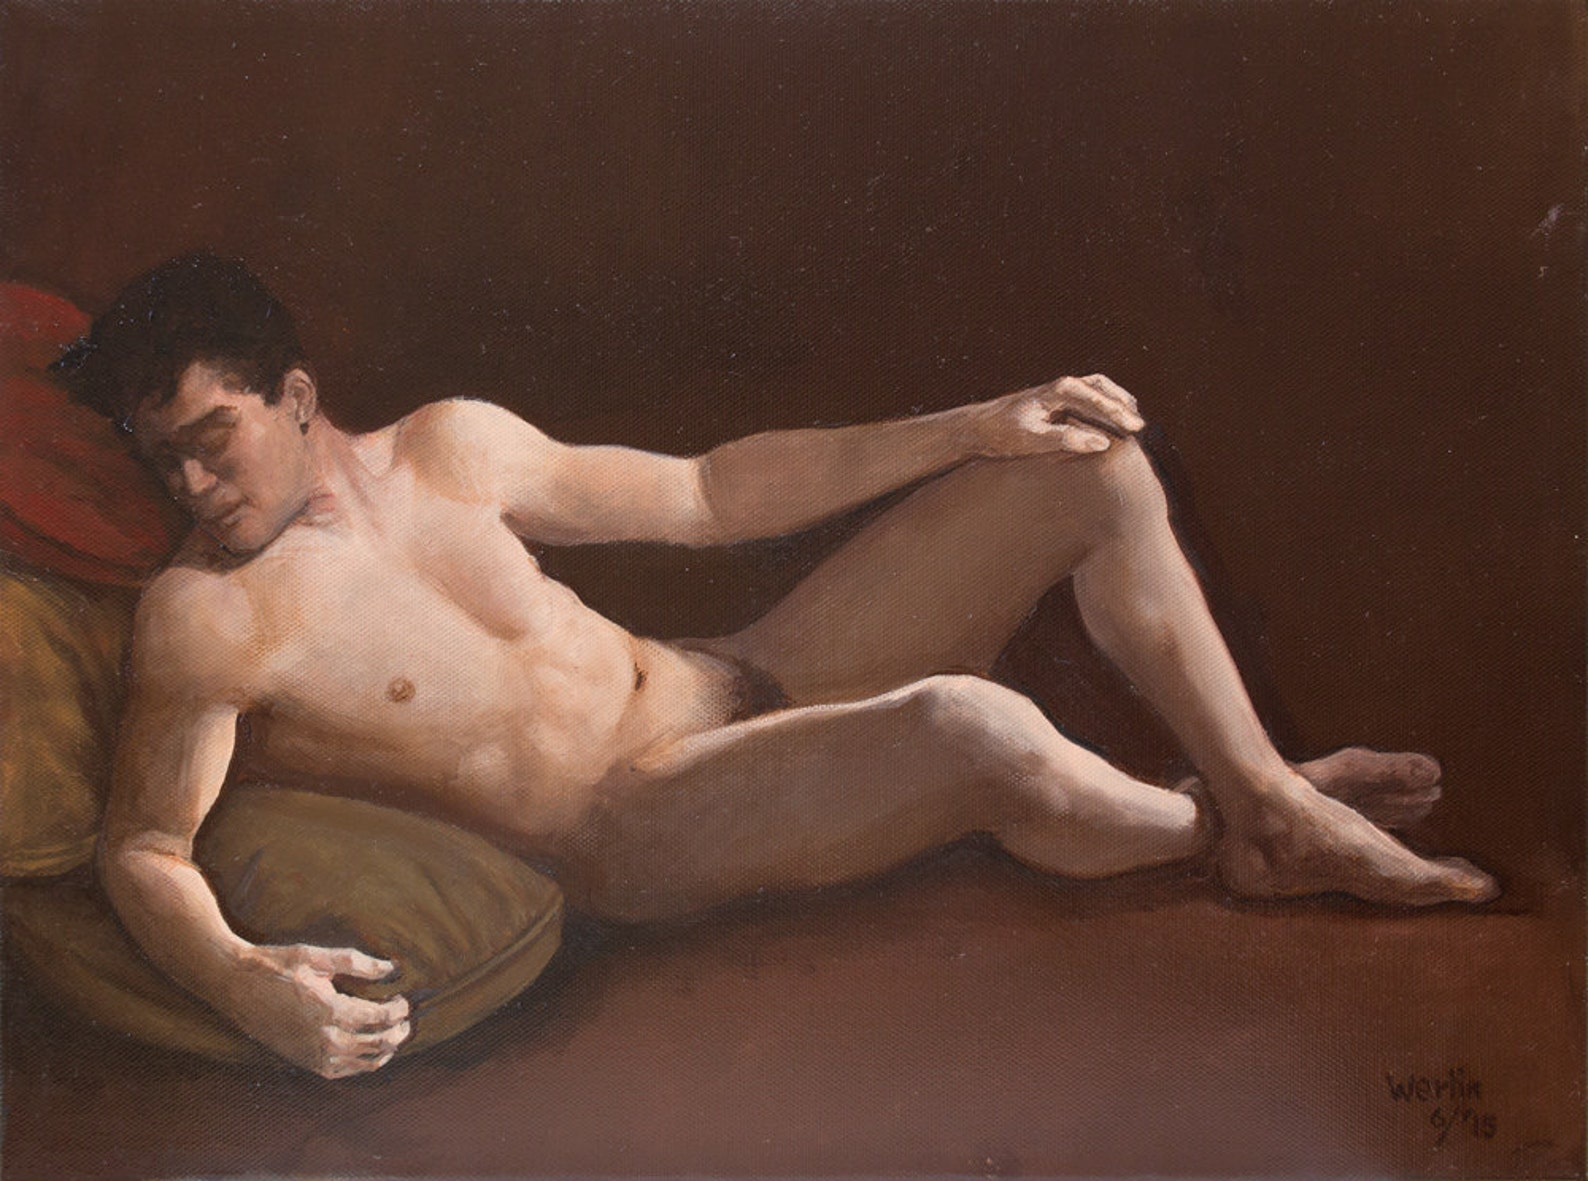 Nude male in socks painting